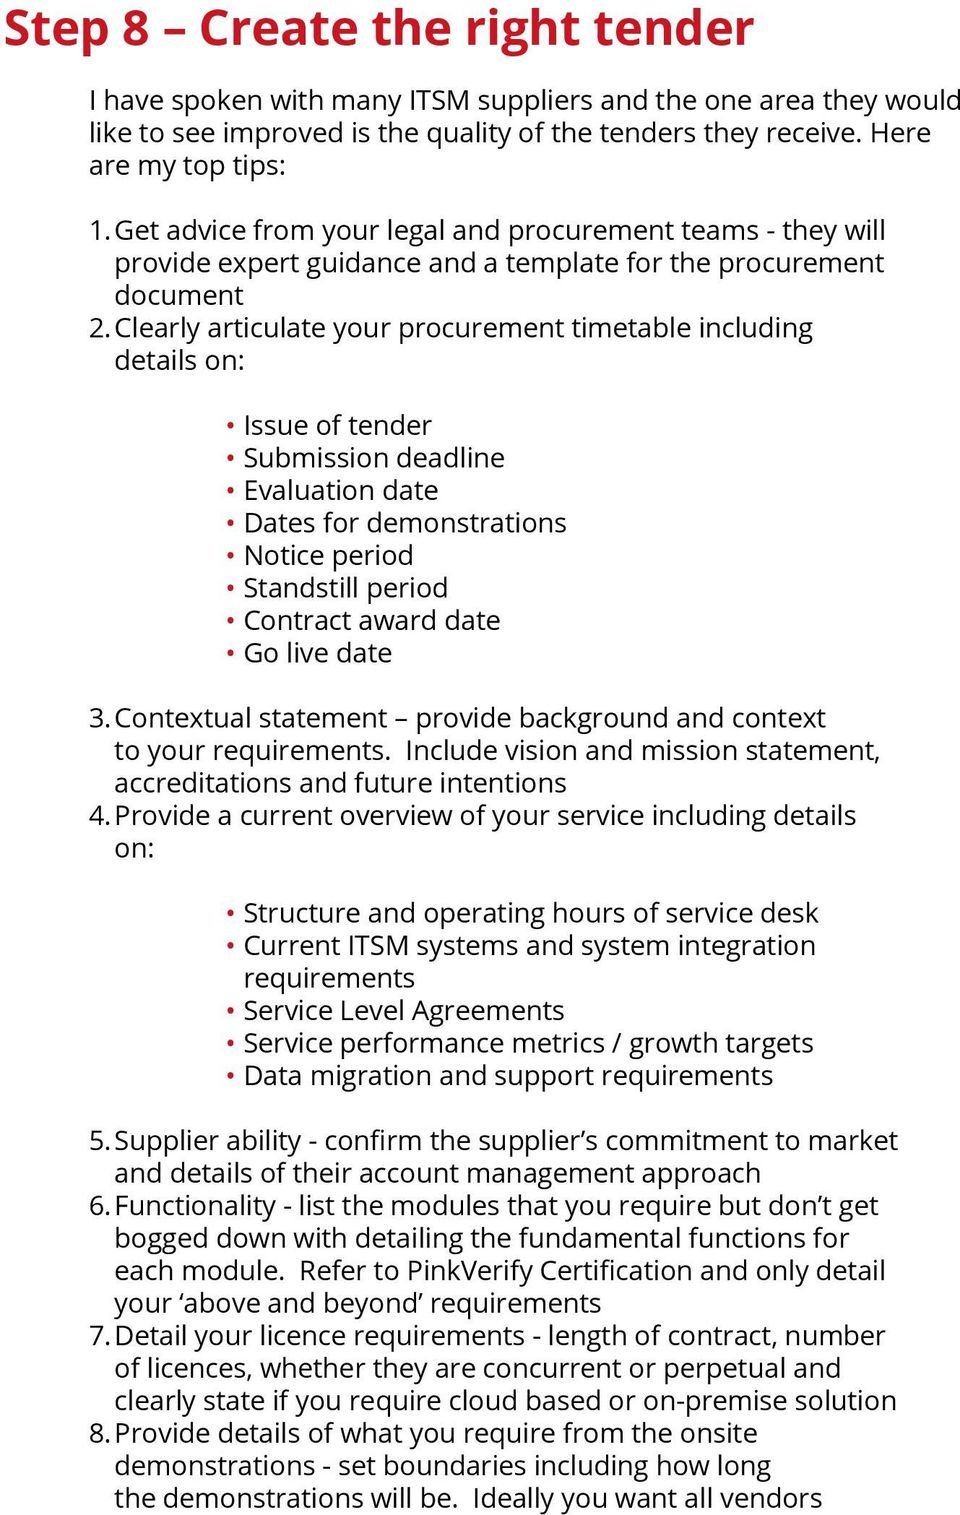 Clearly articulate your procurement timetable including details on: Issue of tender Submission deadline Evaluation date Dates for demonstrations Notice period Standstill period Contract award date Go